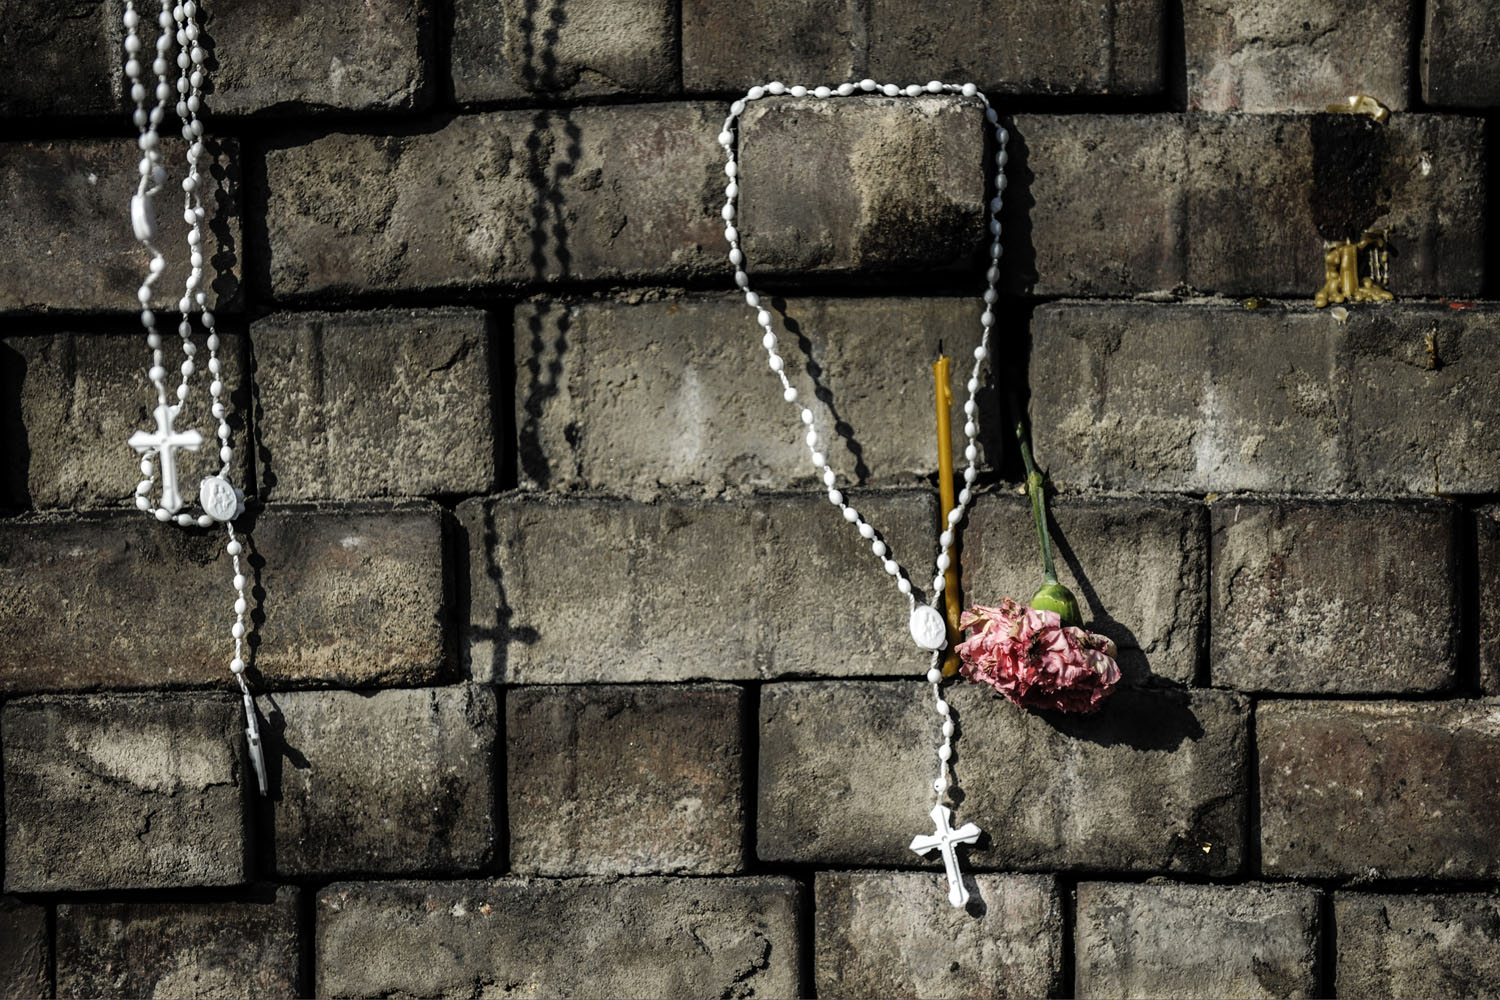 Crosses and flowers left by people near a makeshift memorial in homage to anti-government protesters killed in clashes with riot police on Kiev's Independence Square, Feb. 24, 2014.